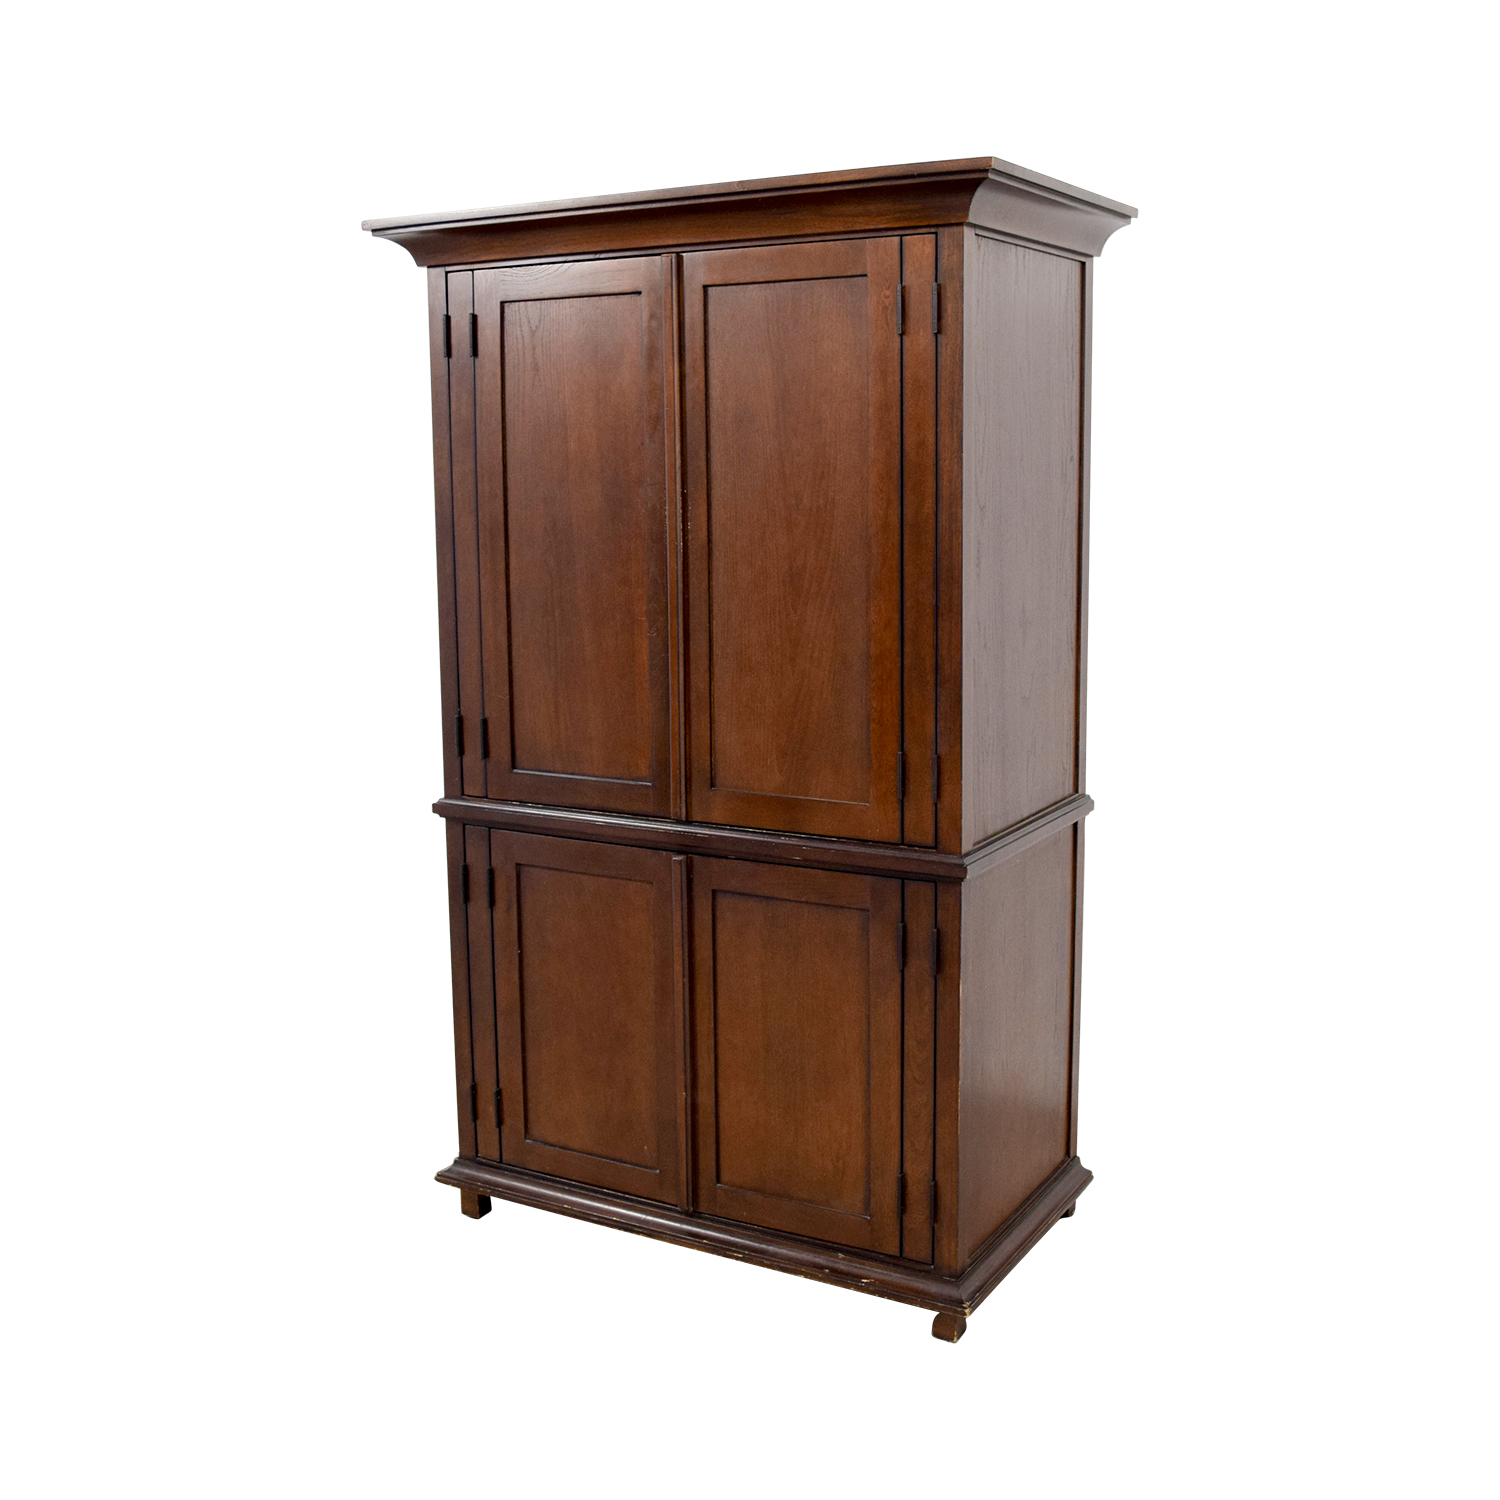 Merveilleux ... Pottery Barn Pottery Barn Armoire With Shelves Discount ...